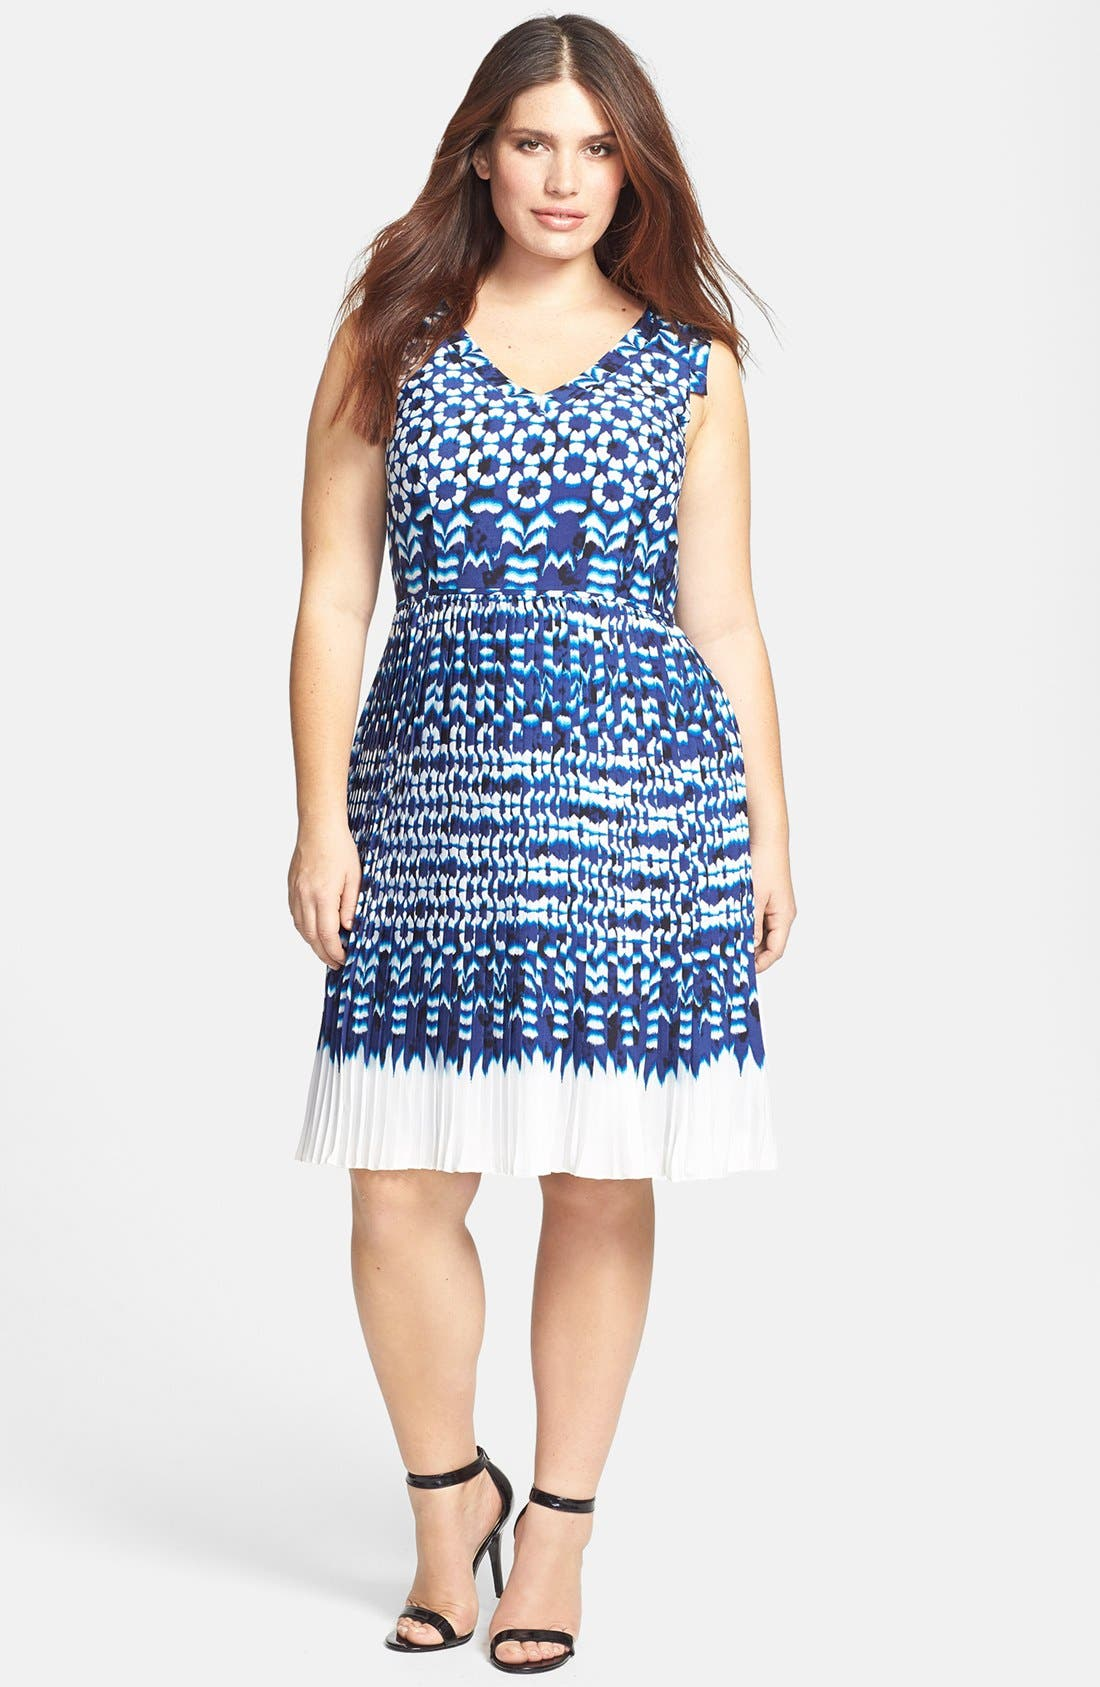 Alternate Image 1 Selected - Adrianna Papell Ikat Print Pleat Fit & Flare Dress (Plus Size)